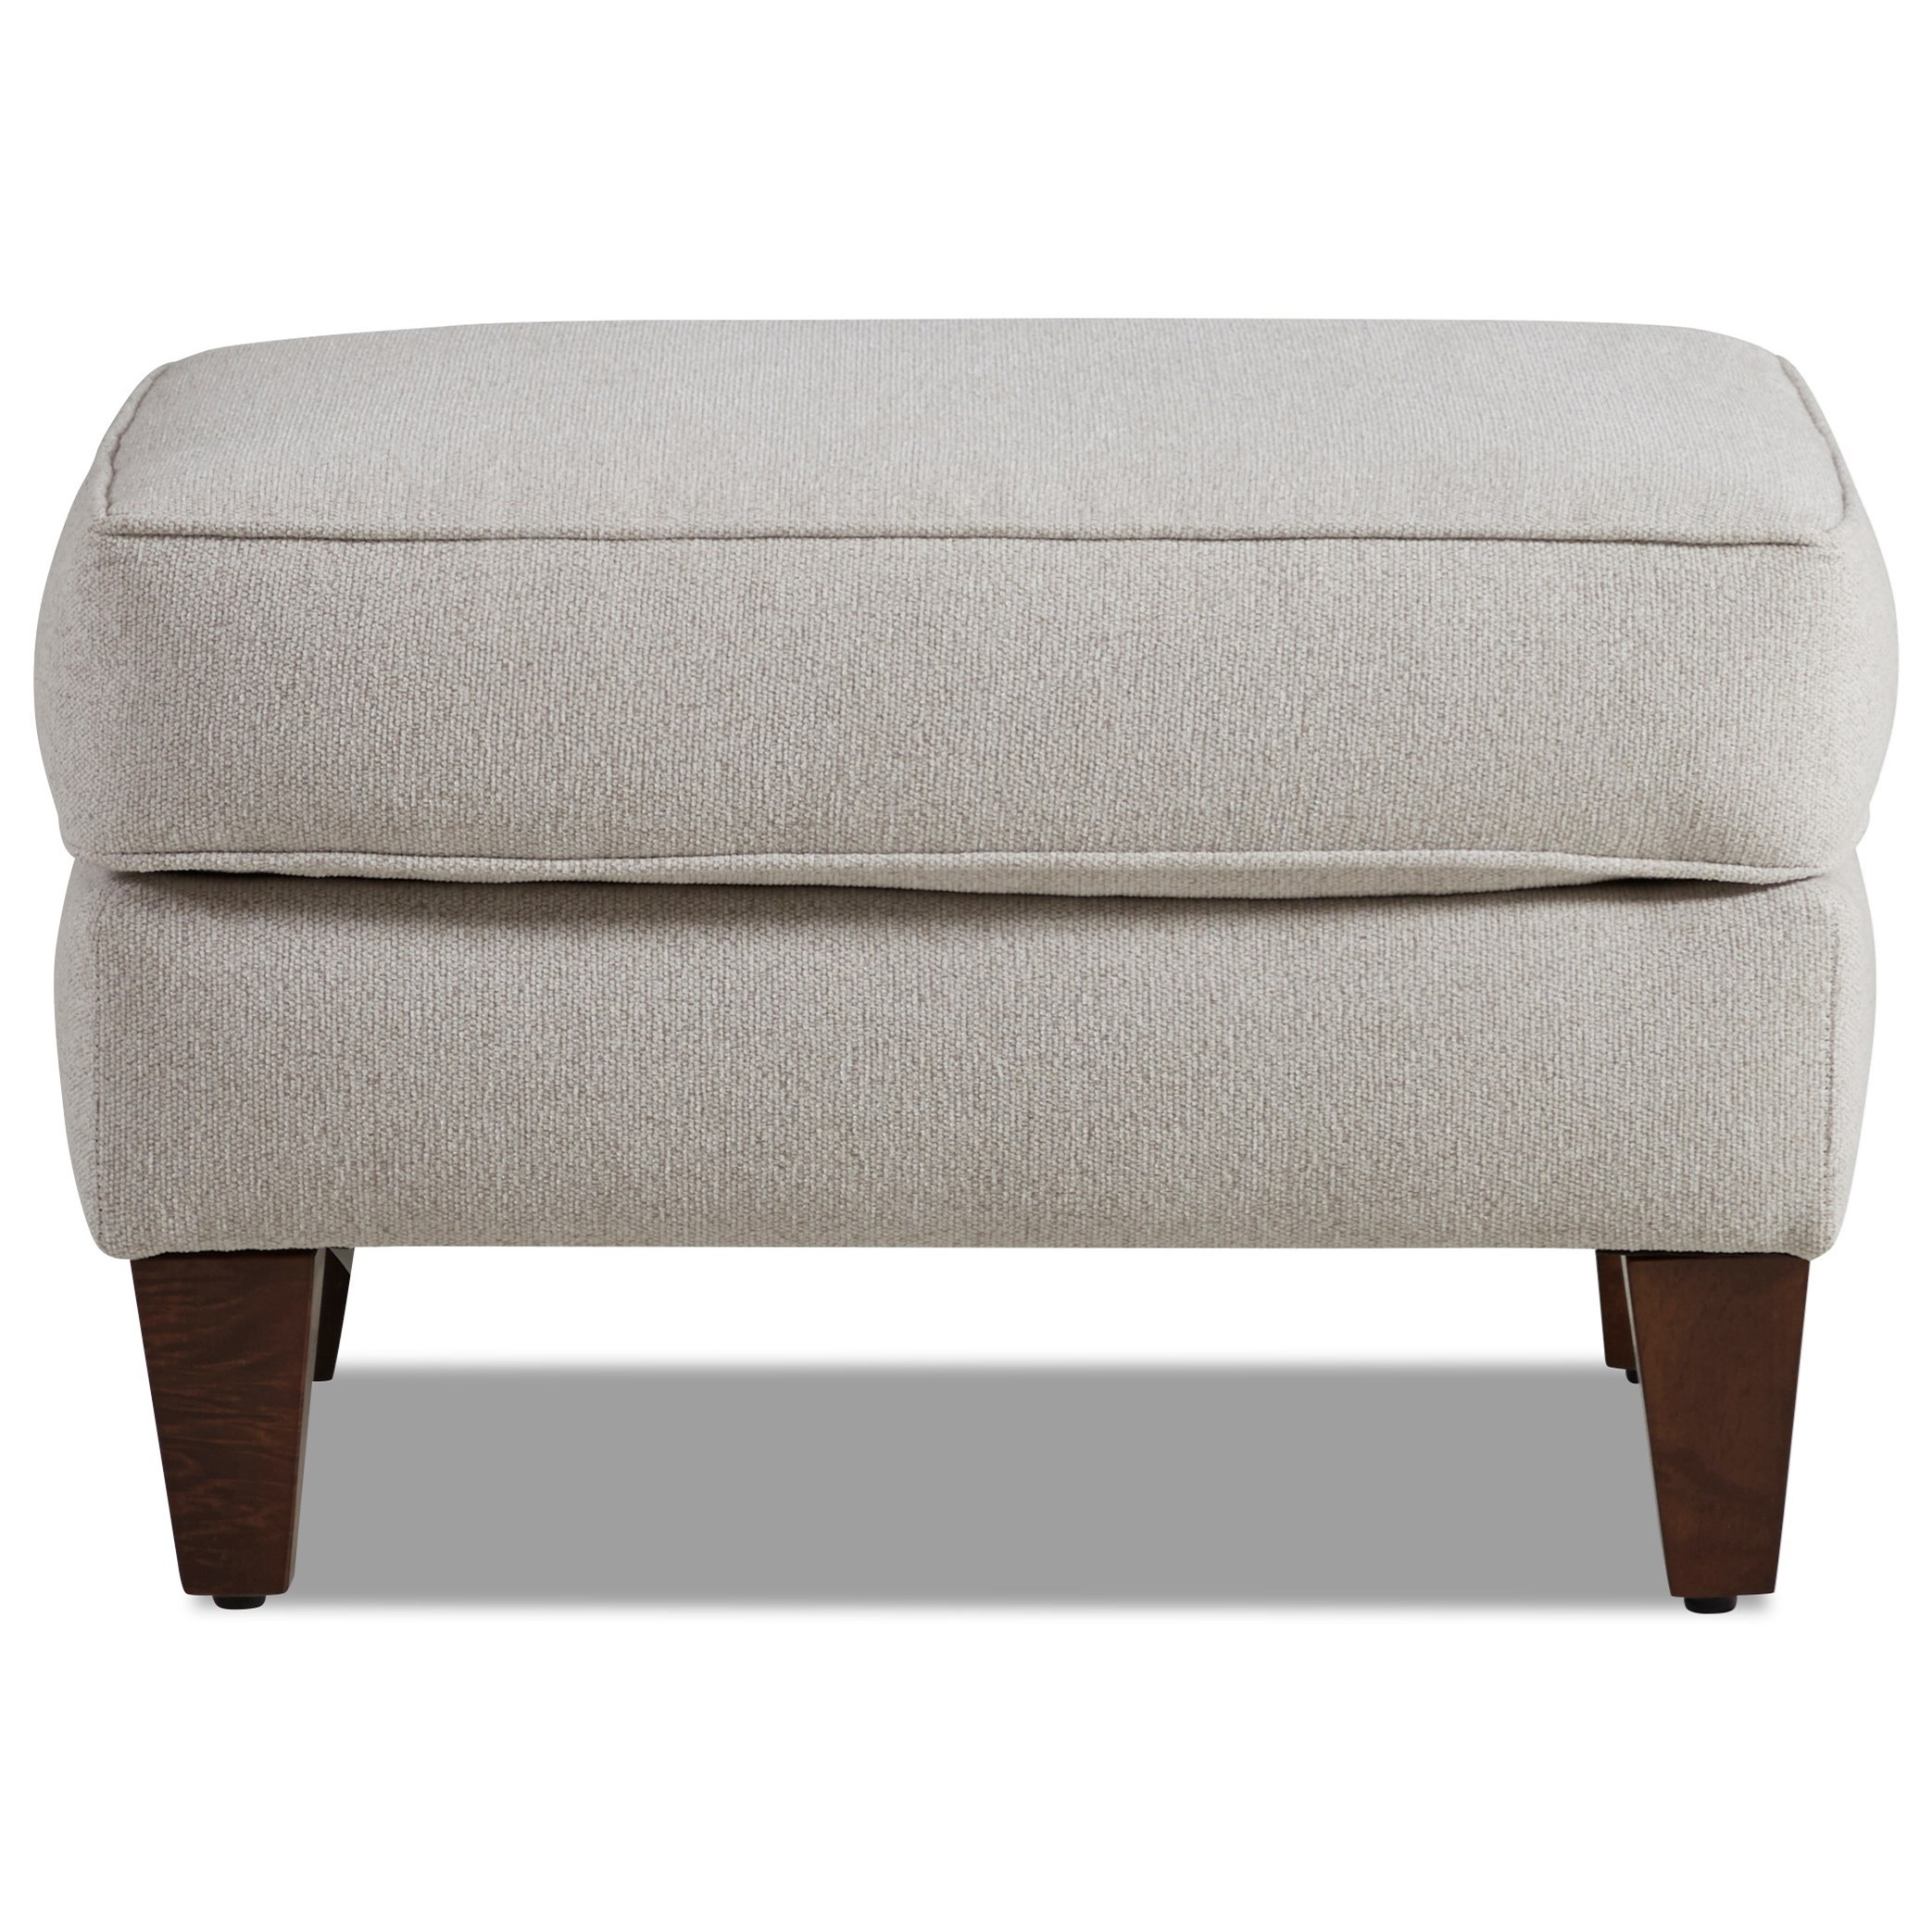 Getty Ottoman by Klaussner at Northeast Factory Direct